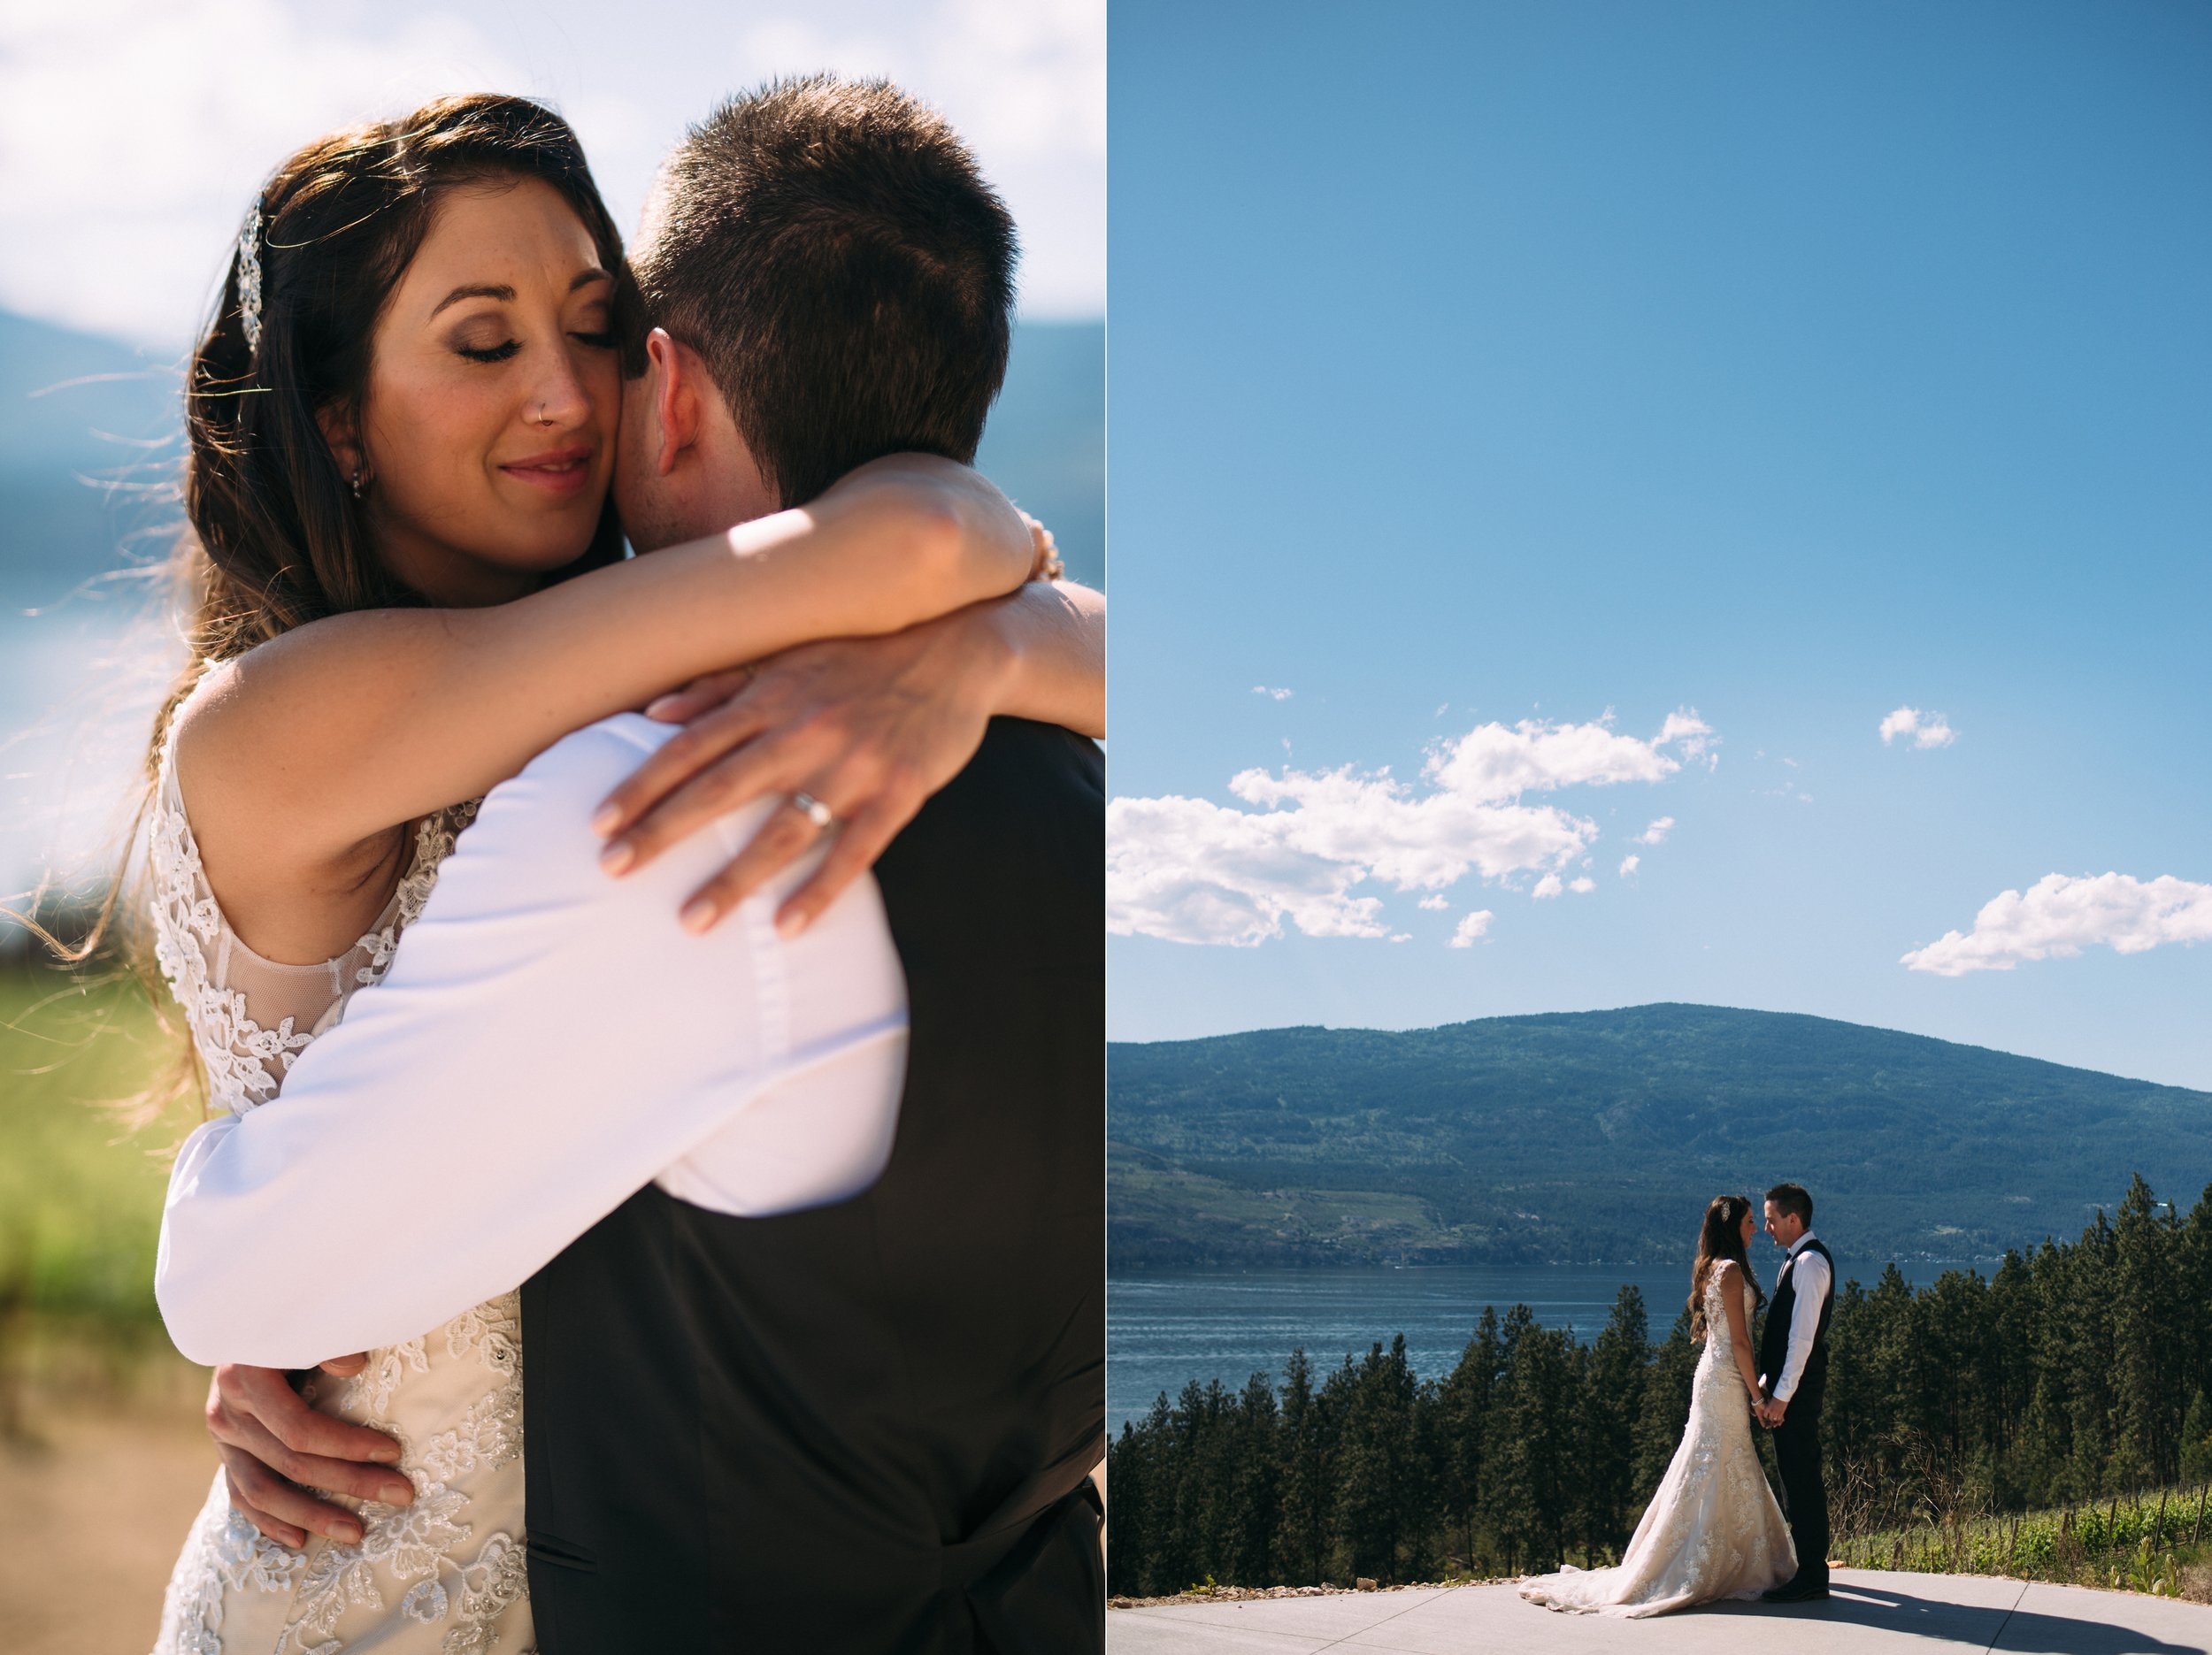 kaihla_tonai_intimate_wedding_elopement_photographer_3891